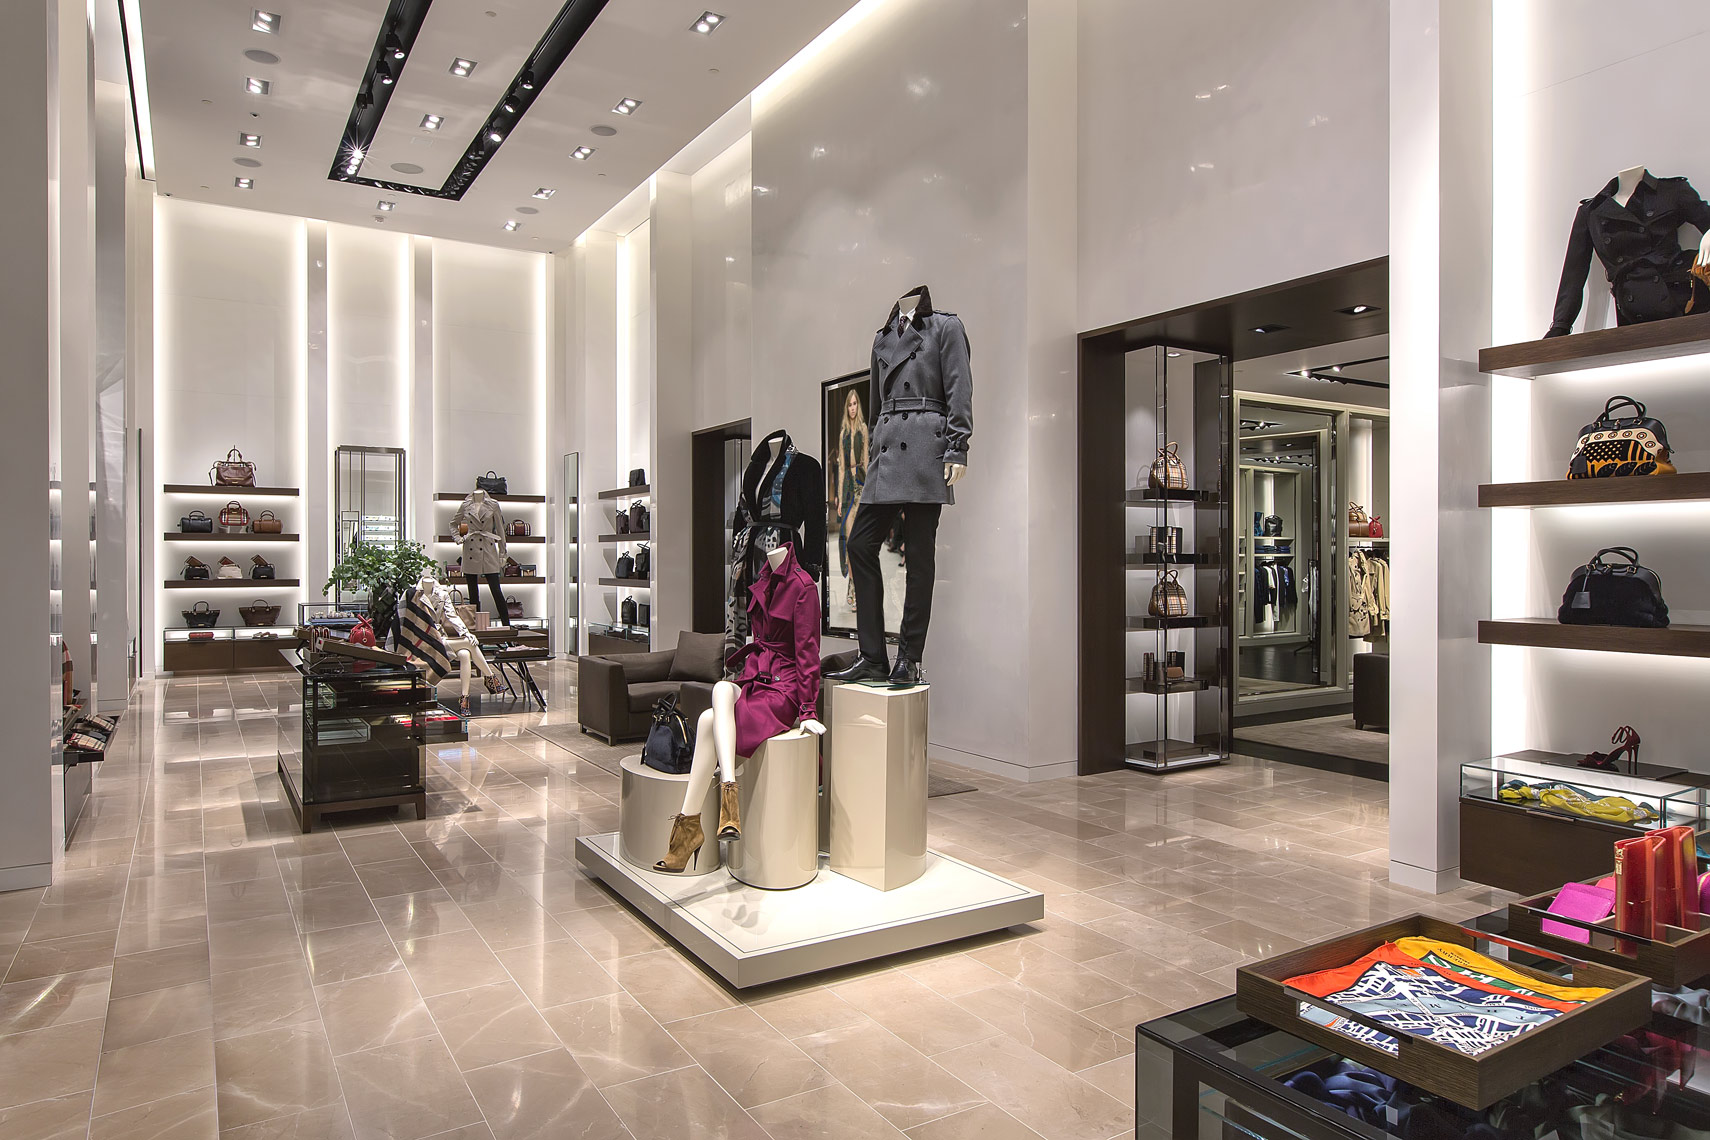 Photography of a Retail Interior and architectural design at Burberry. SGM Photography